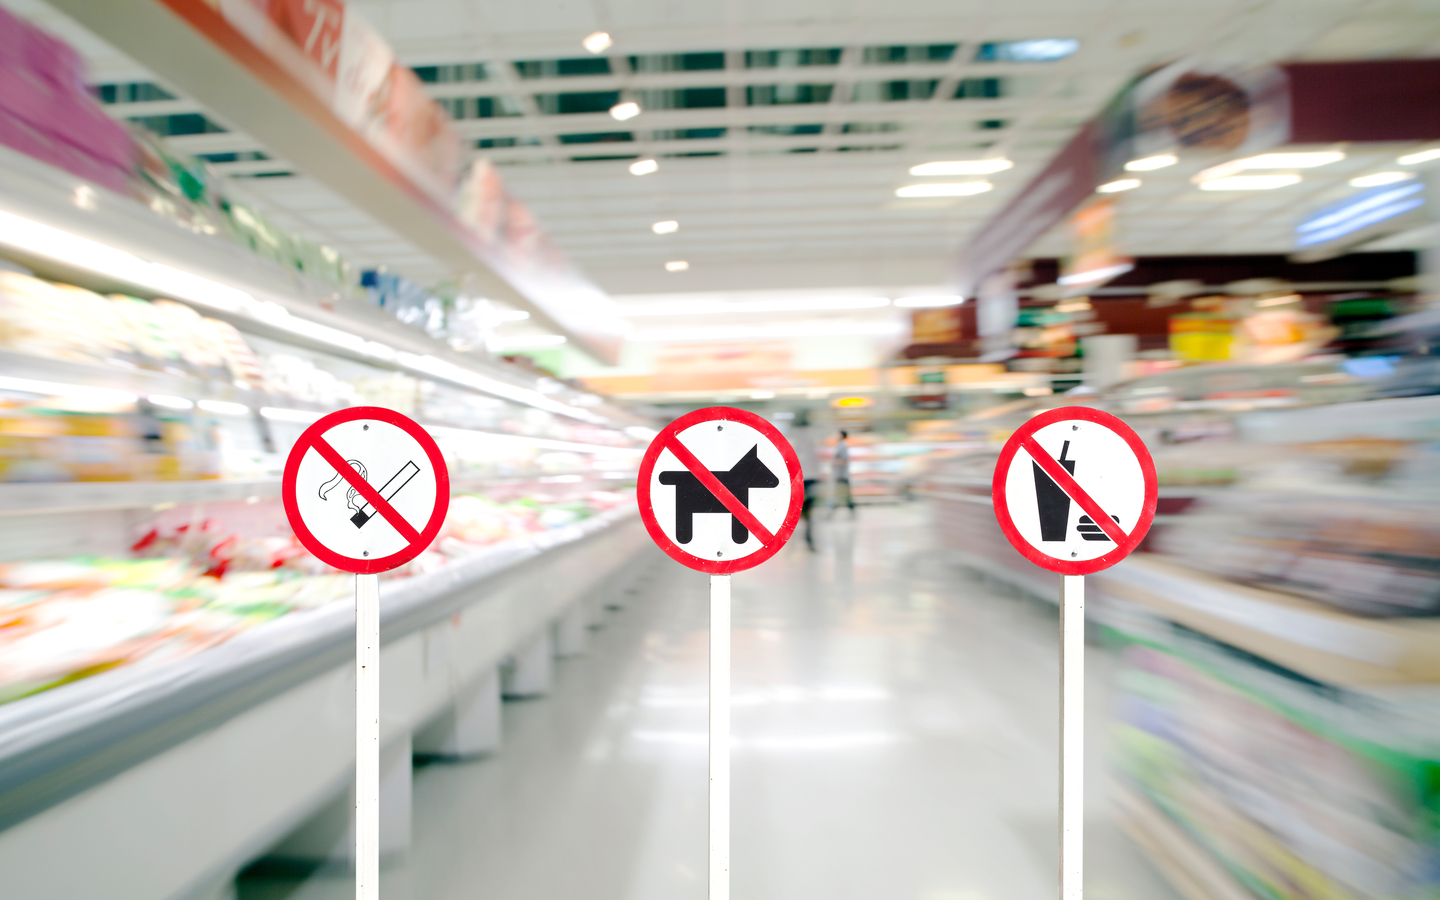 Avoid smoking or bringing pets to the mall.